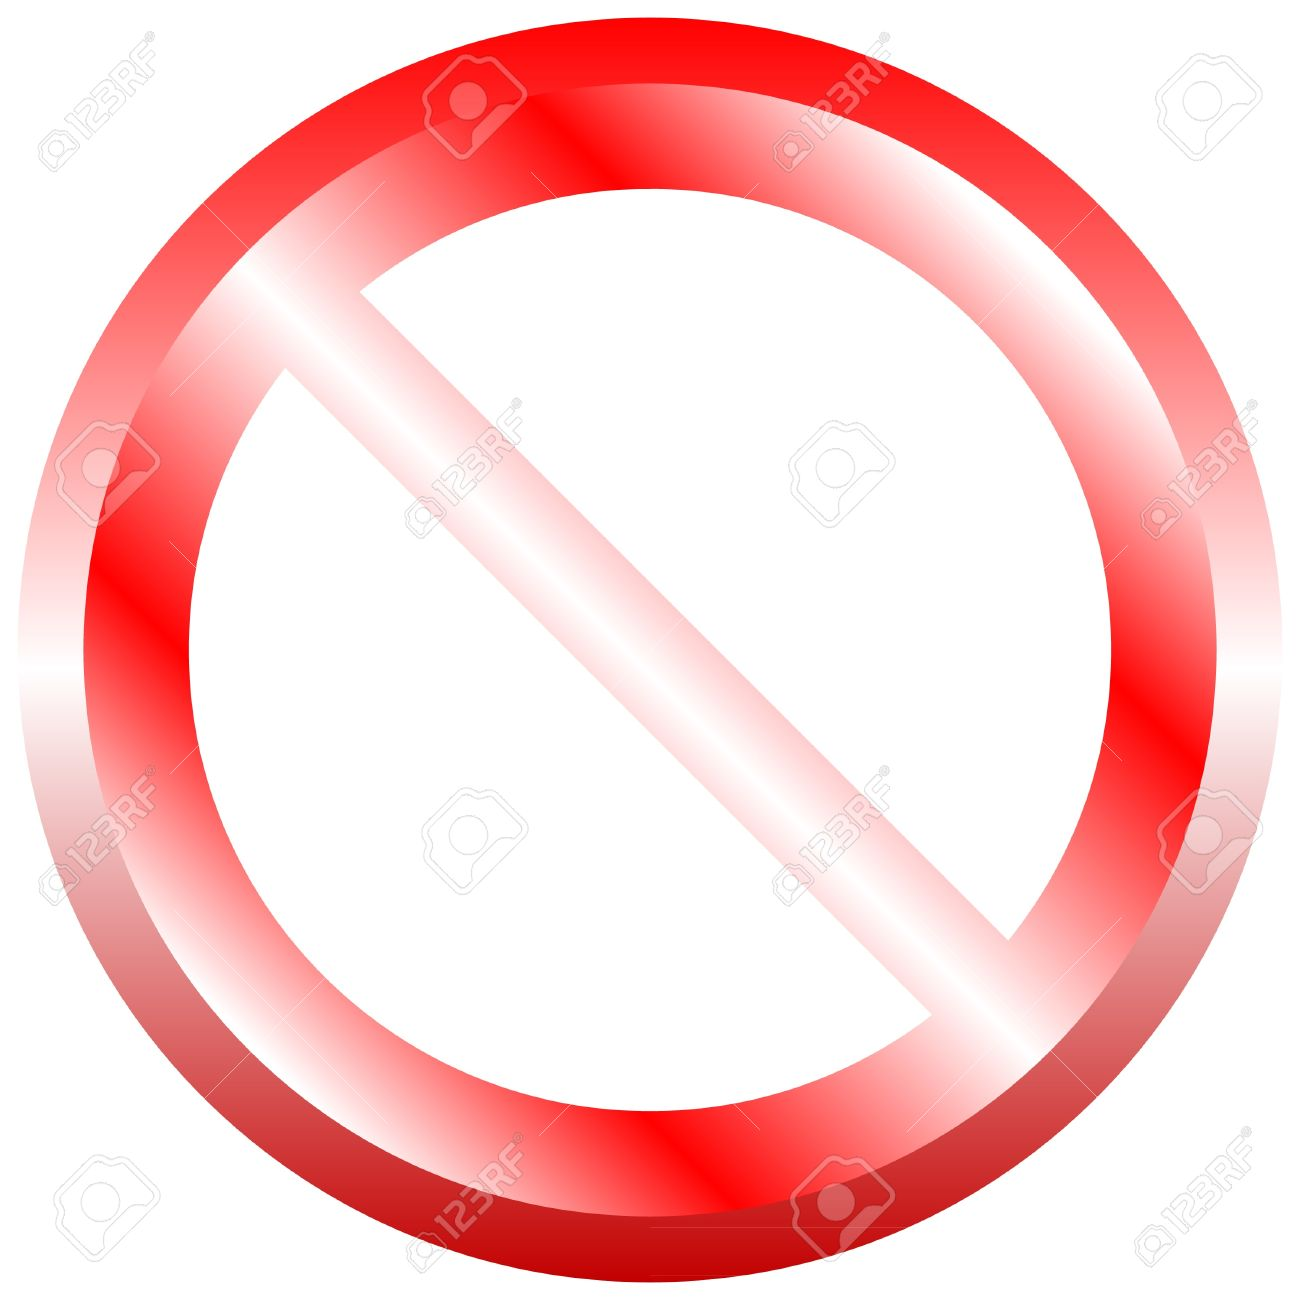 Illustration of prohibited sign on isolated white background Stock Vector - 10275482